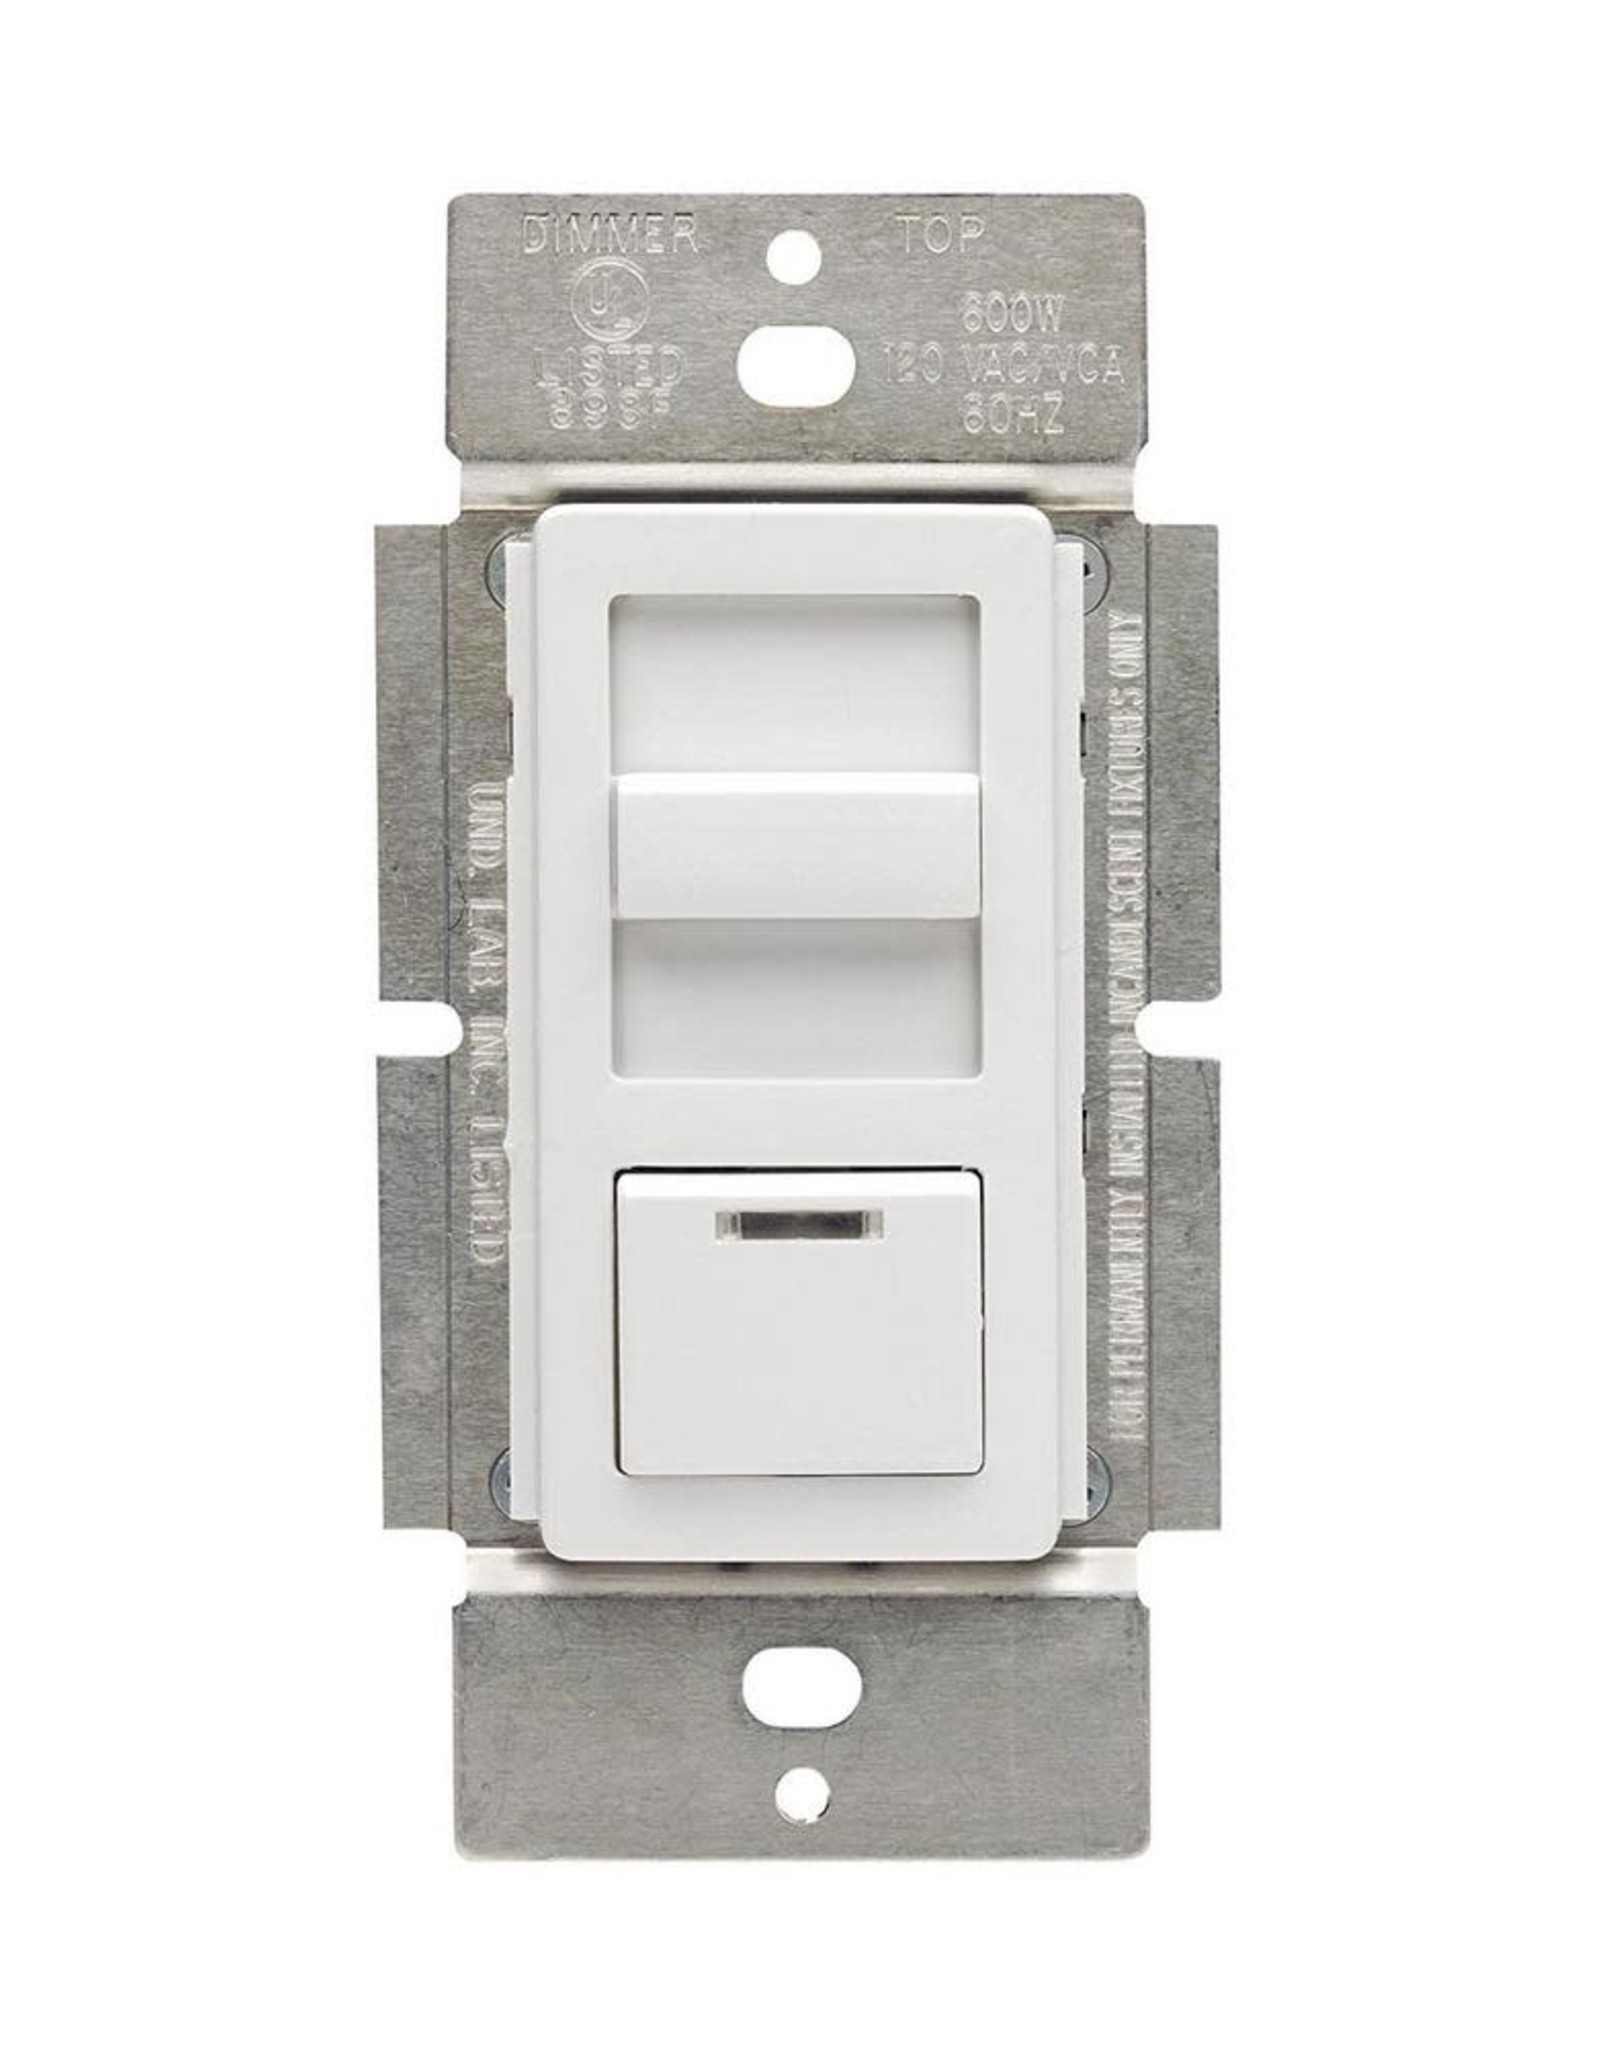 Leviton 1.5-Amp Decora Illumatech Single Pole Step Fan Speed Control With Preset Button, White/ Ivory/ Light Almond